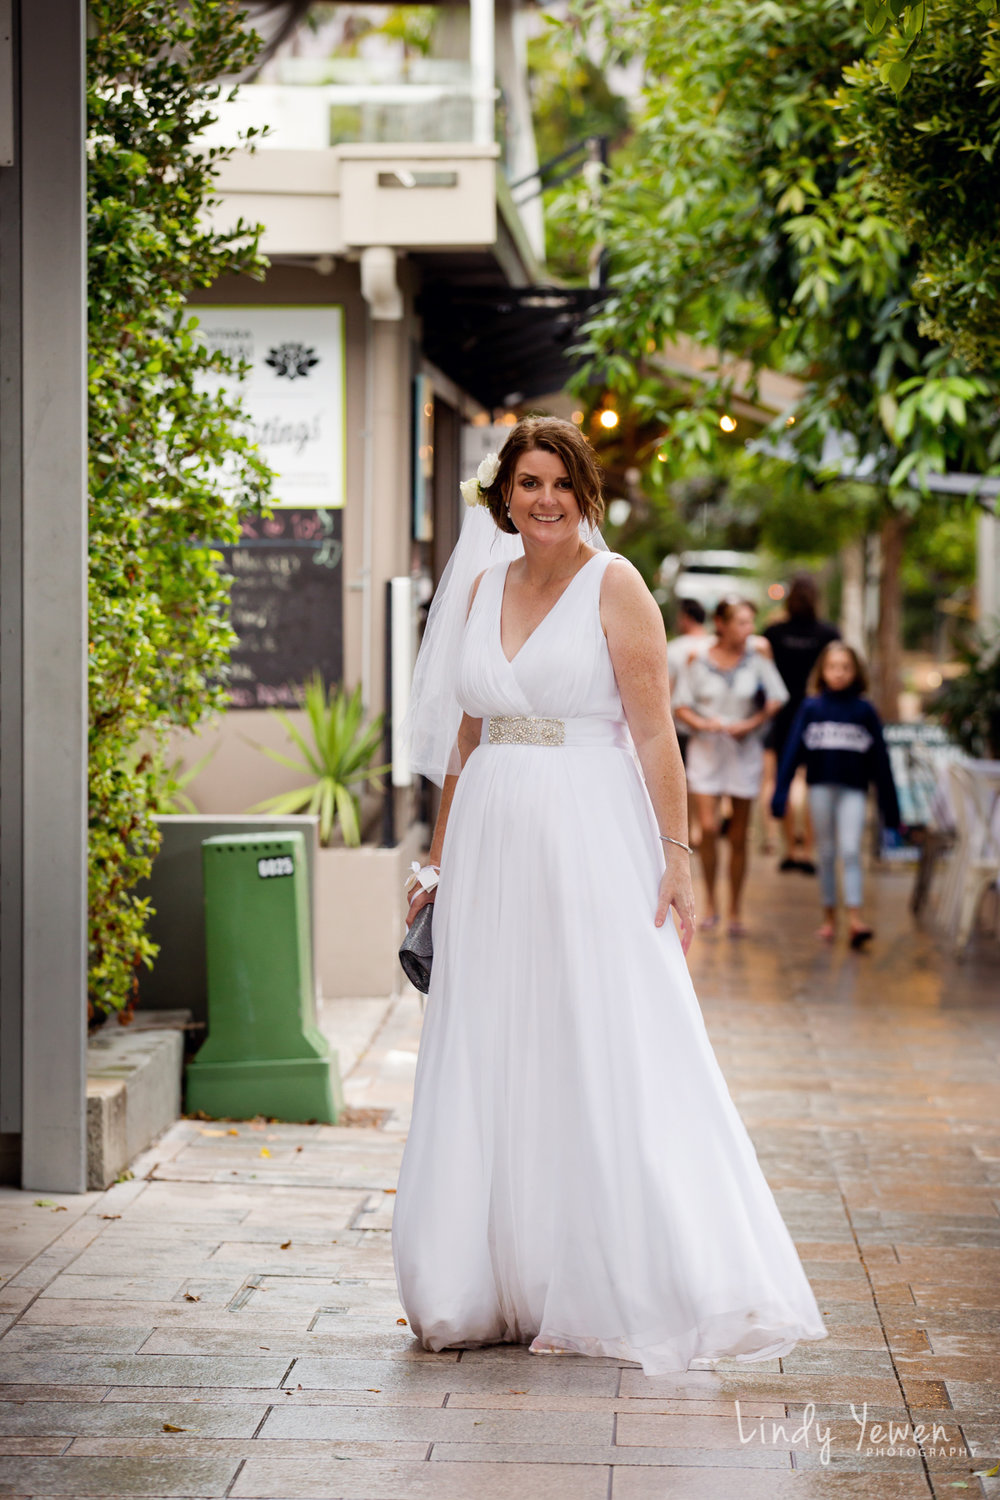 Sofitel-Noosa-Wedding-Sarah-Matt 445.jpg